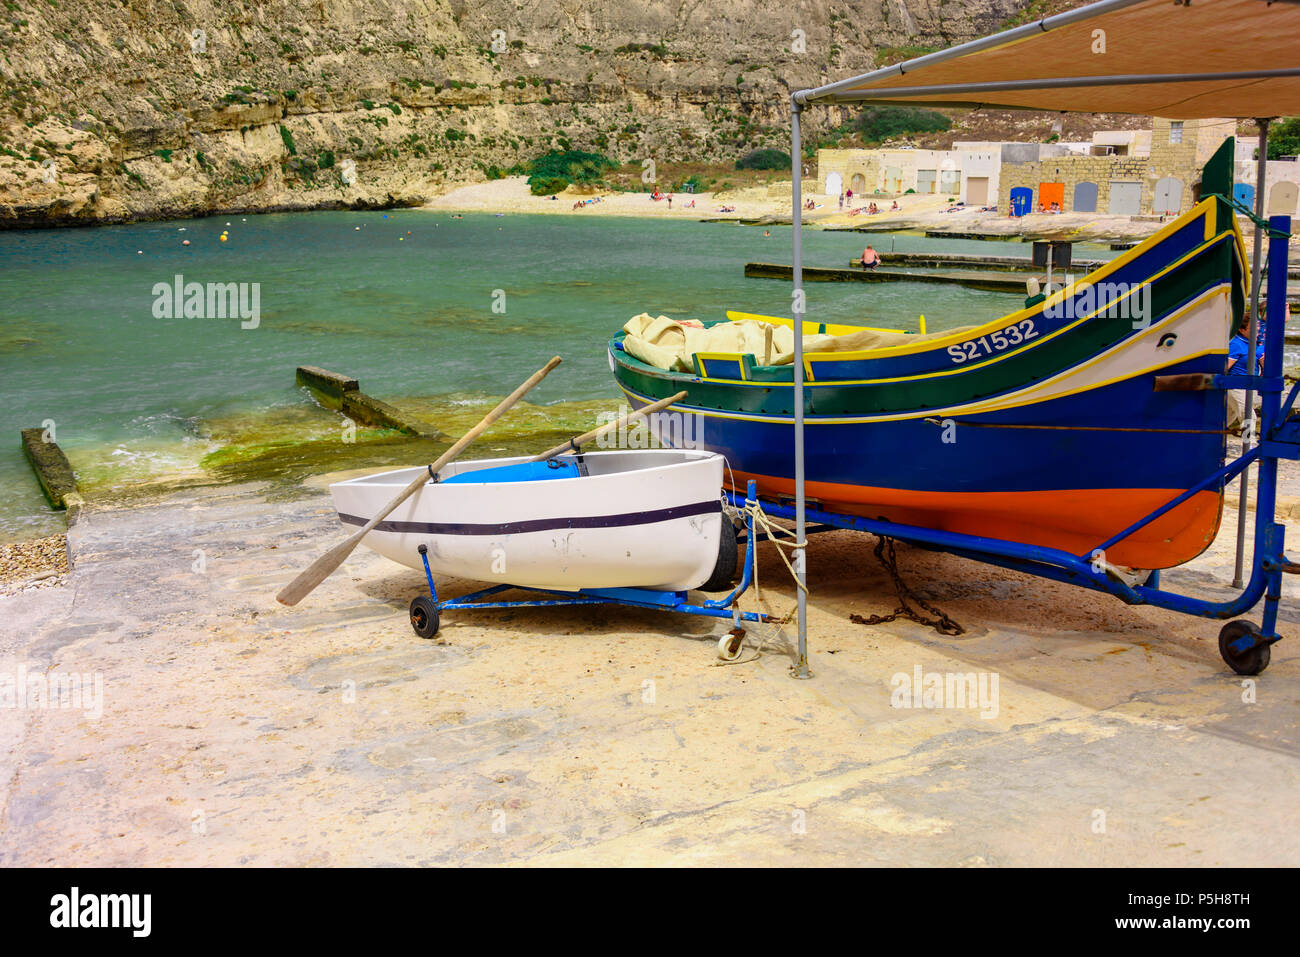 A traditional Maltese clinker boat at Dwerja, the Inland sea, Gozo, Malta - Stock Image